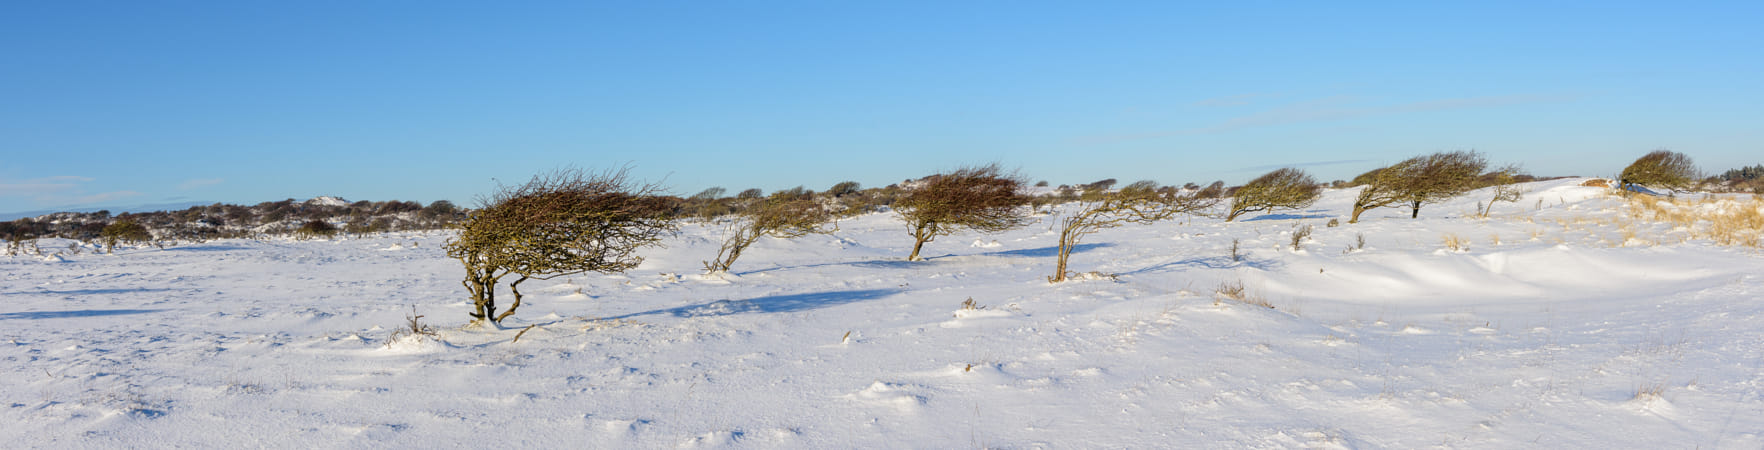 Slanted trees in northern Denmark